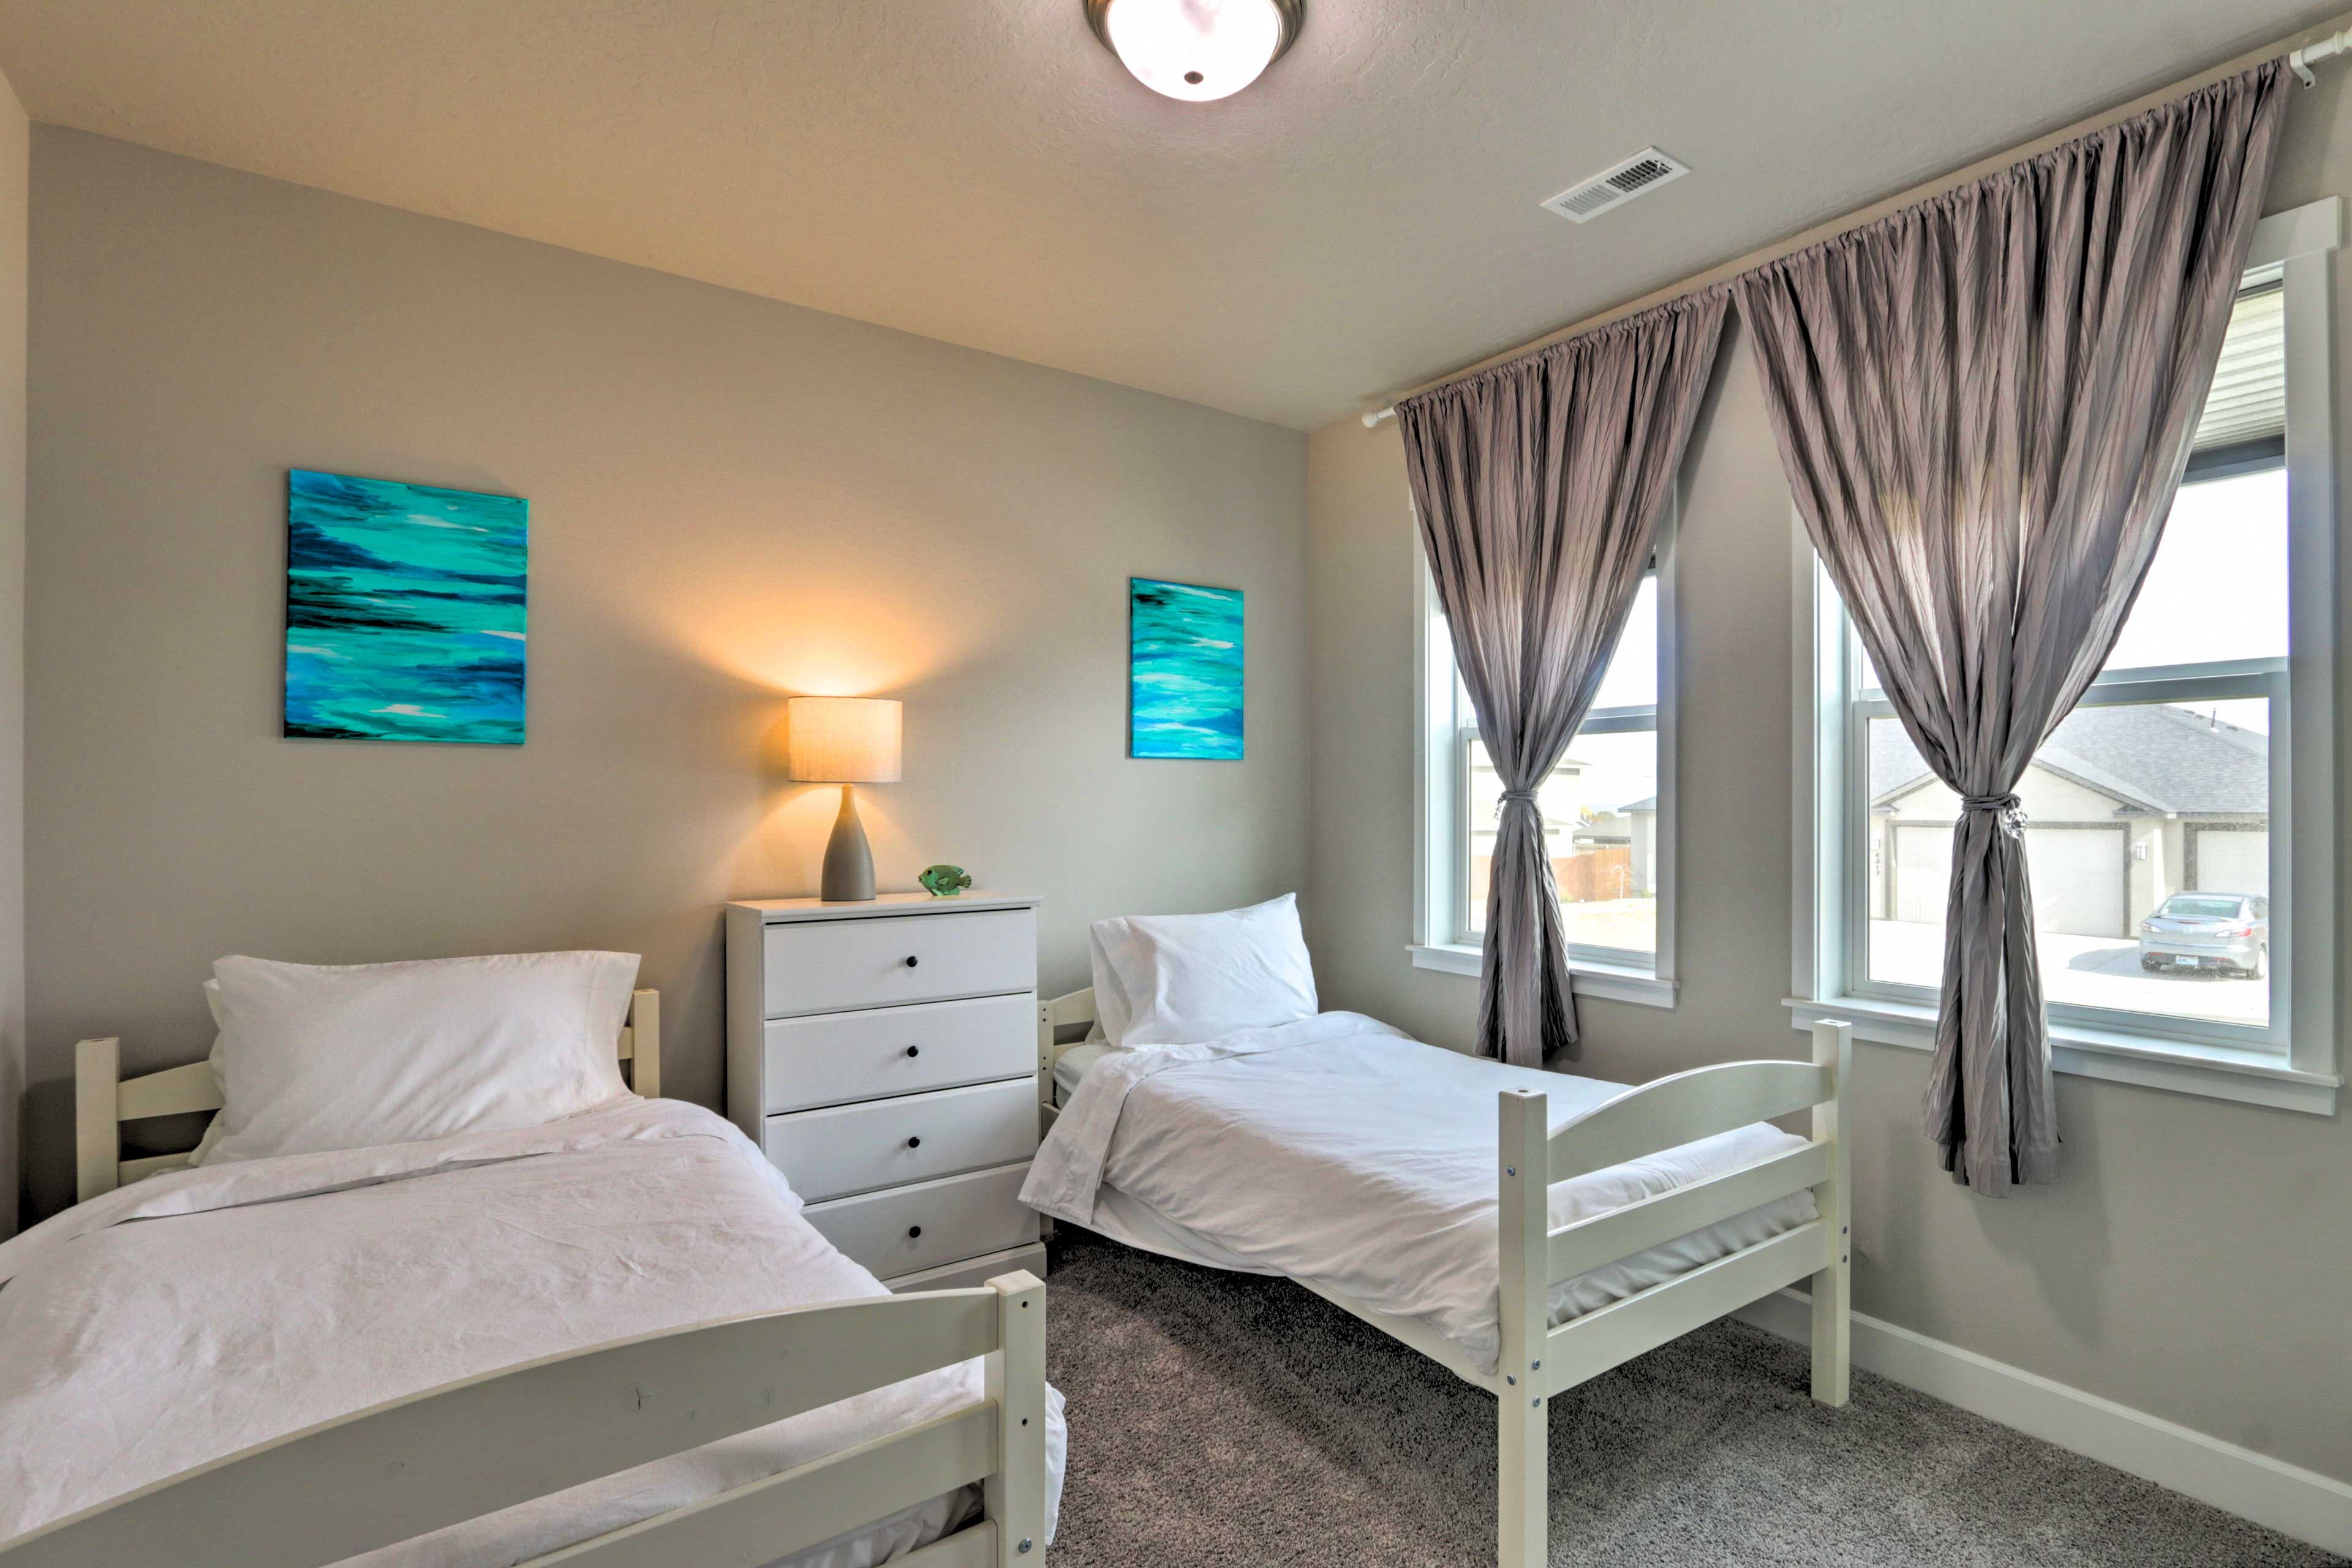 Bedroom 3   2 Twin Beds   Linens Provided